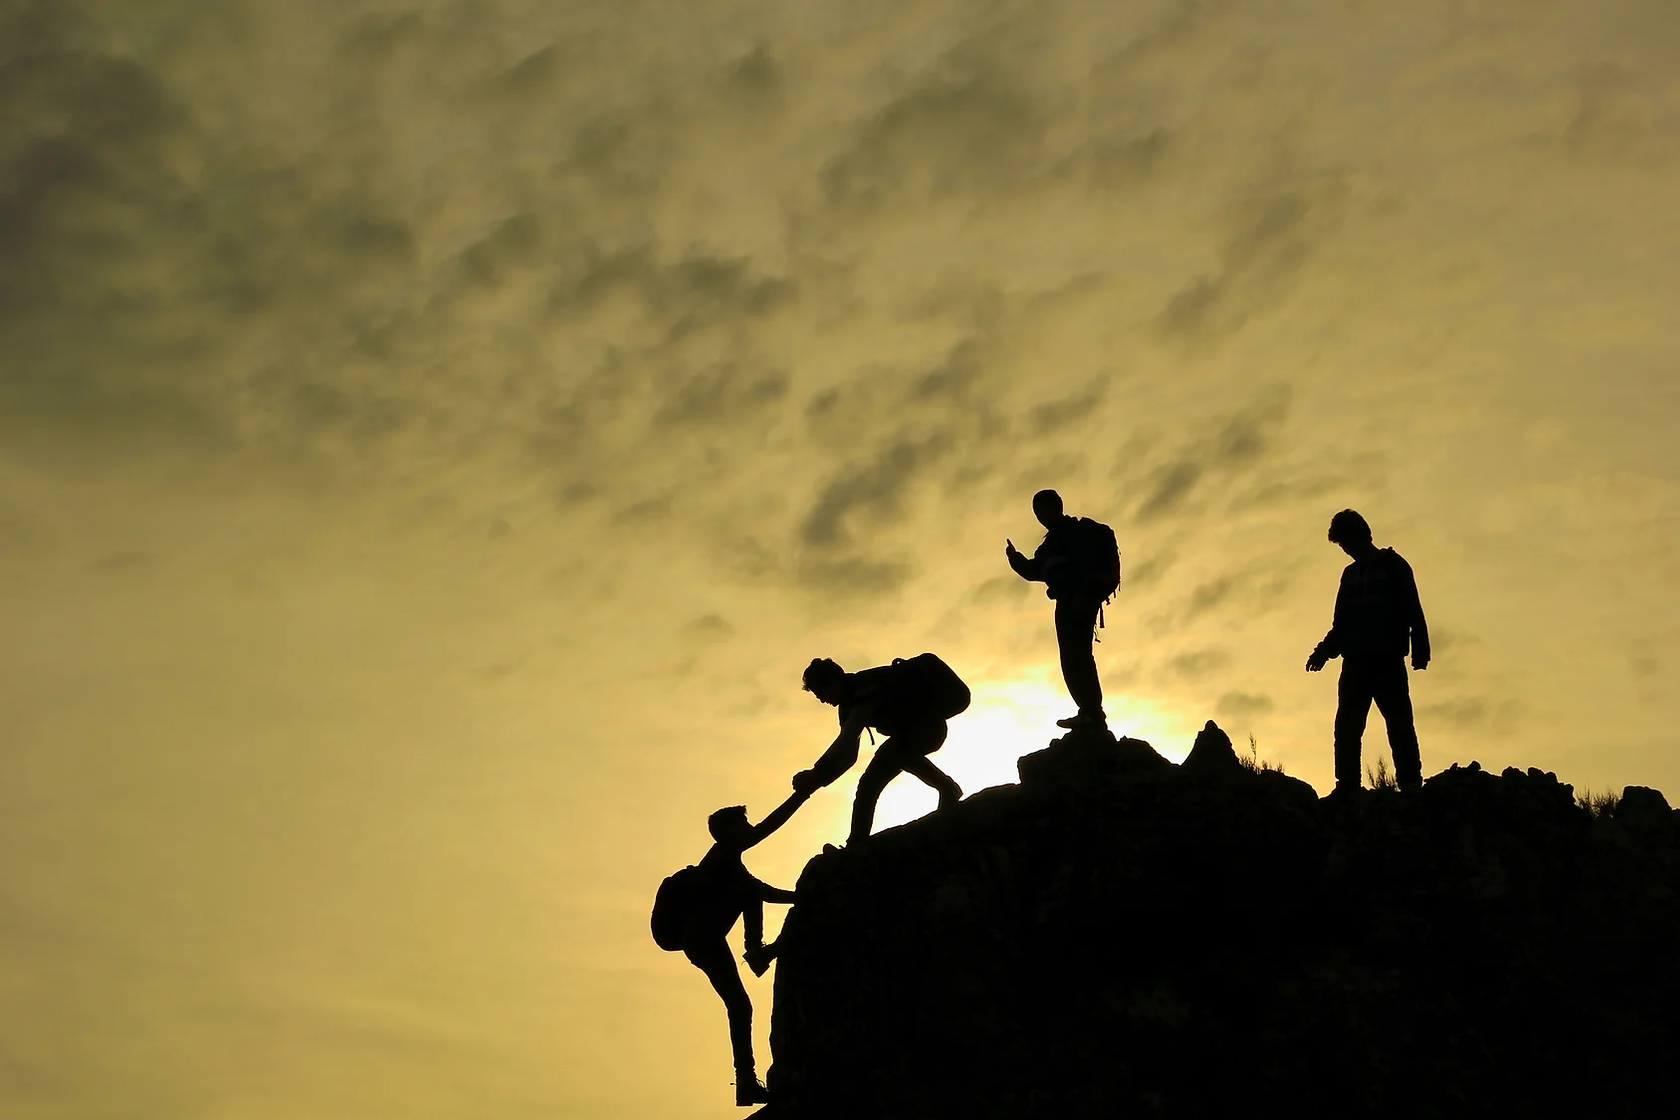 challenging_challenge_climb_cliff_group_